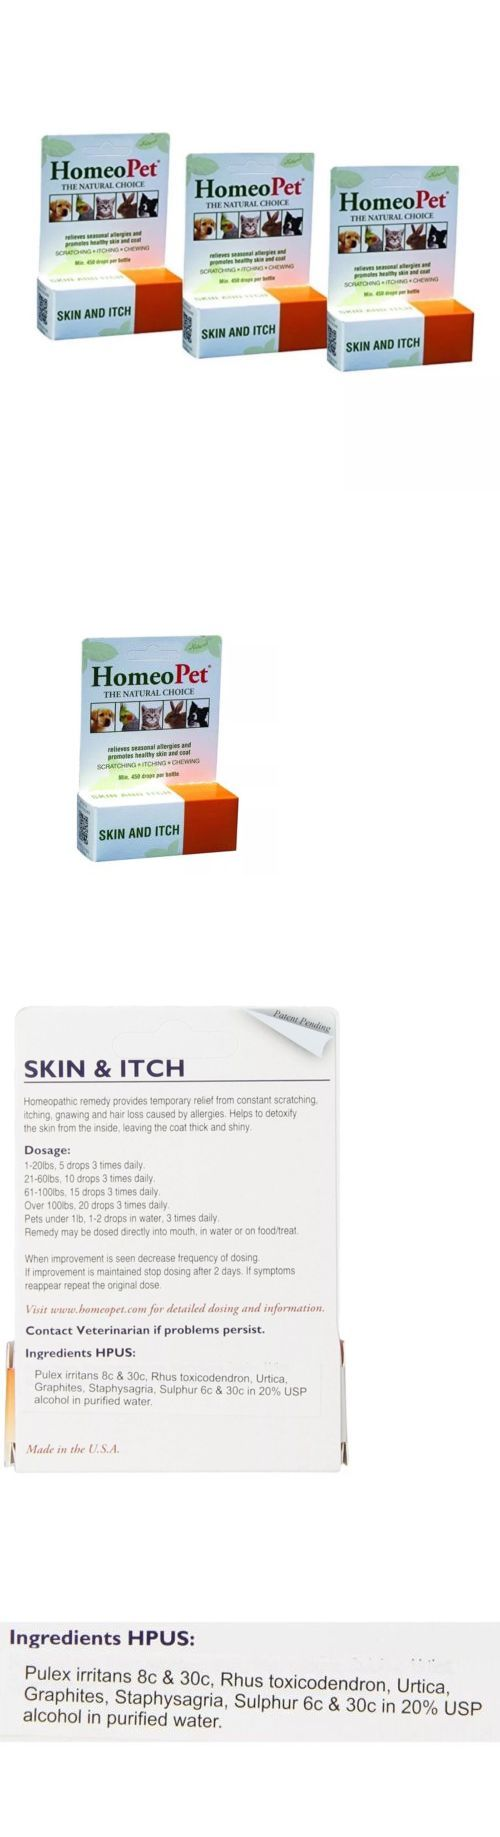 Skin and Coat Care 134791: Homeopet Skin And Itch Relief Homeopathic Safe Natural Dog Cat Bird 15 Ml 3 Pack -> BUY IT NOW ONLY: $30 on eBay!